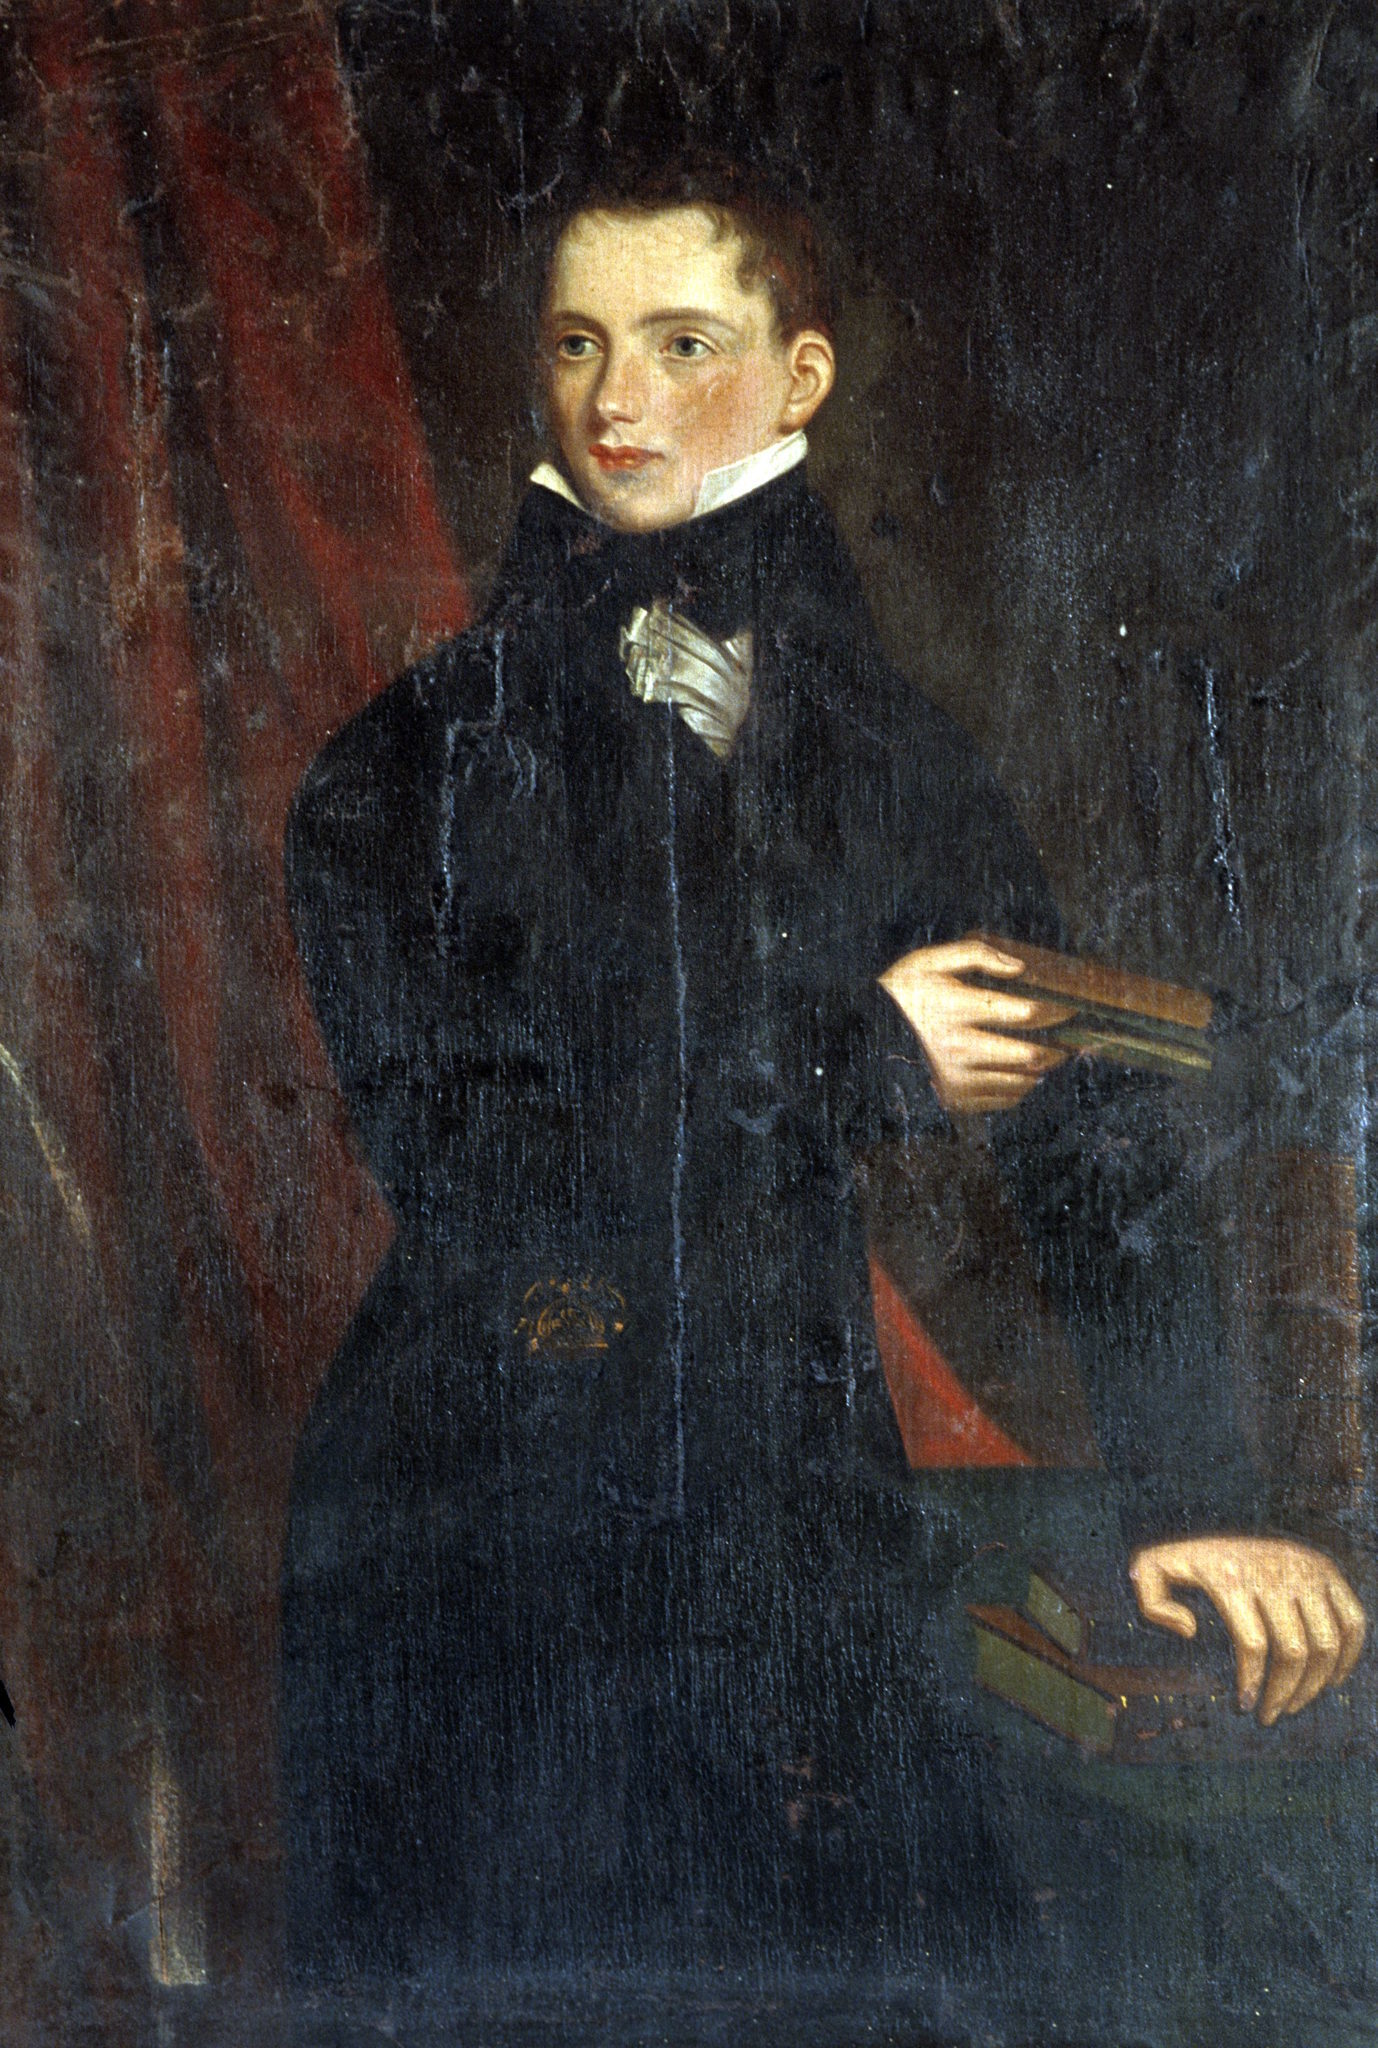 Maurice O'Connell by John Gubbins (fl 1820s). OPW